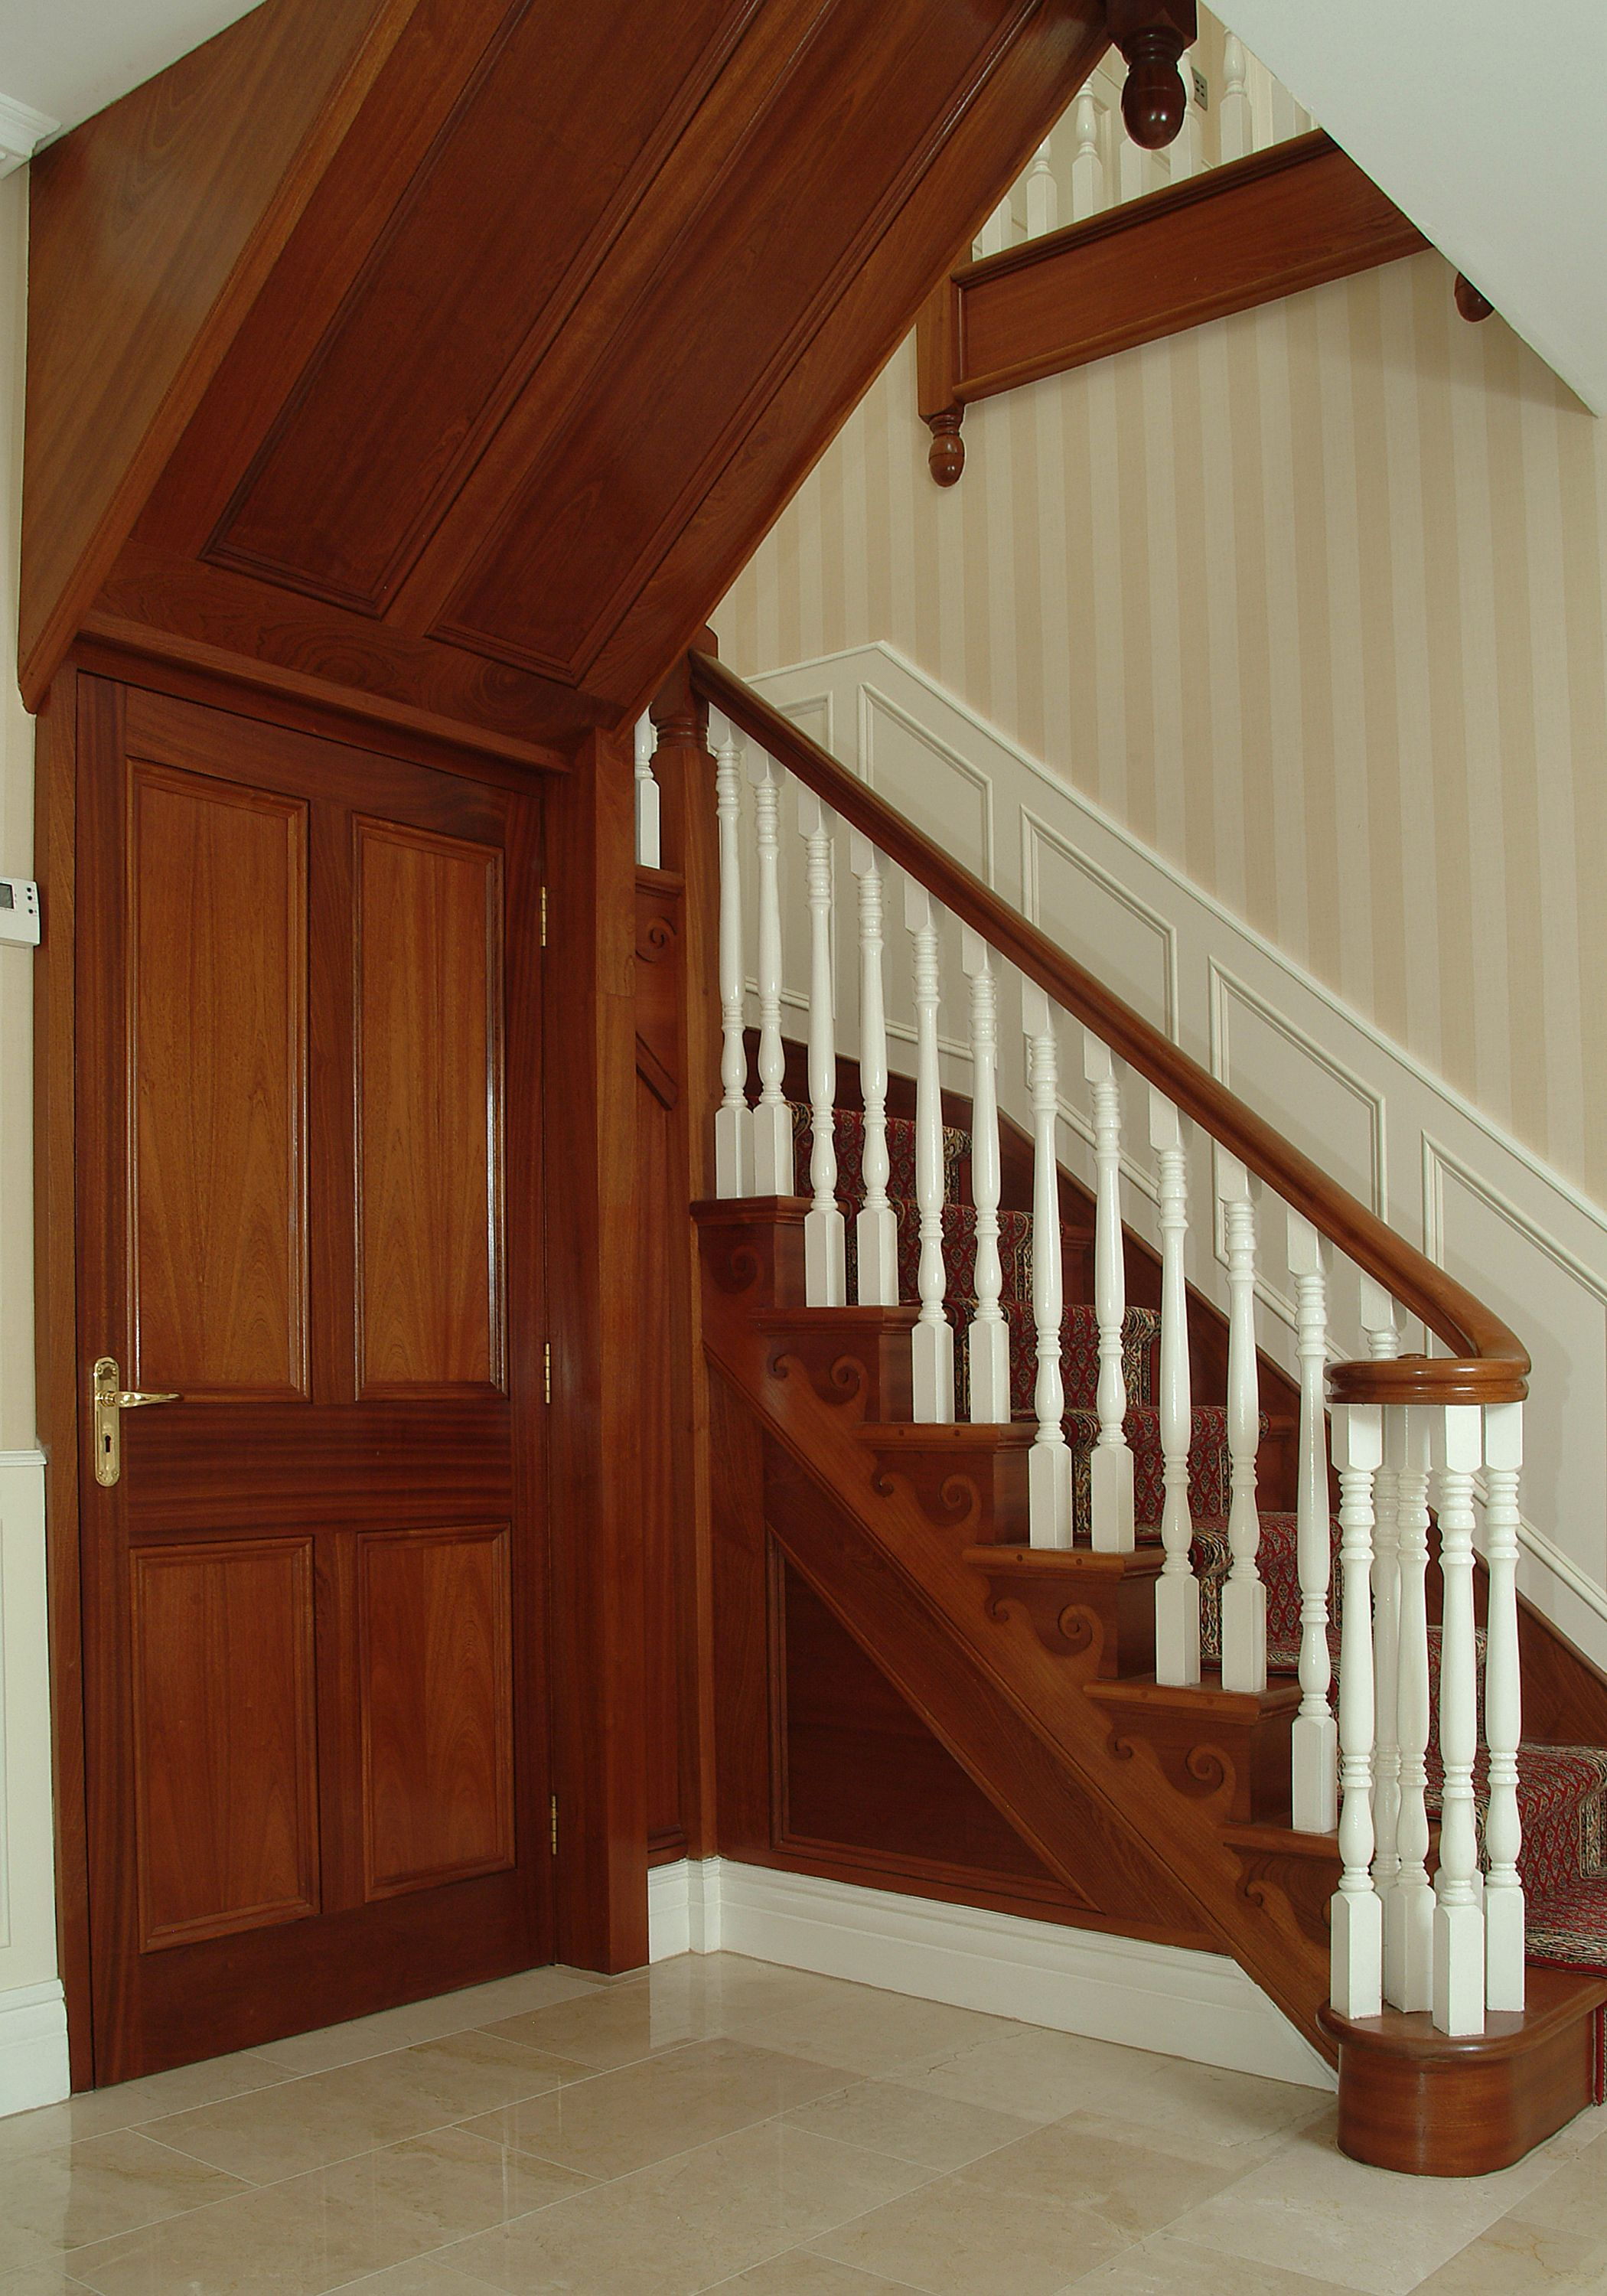 Best Mahogany Treads And Handrail With Painted Balusters Stairs Handrail Home Decor 400 x 300